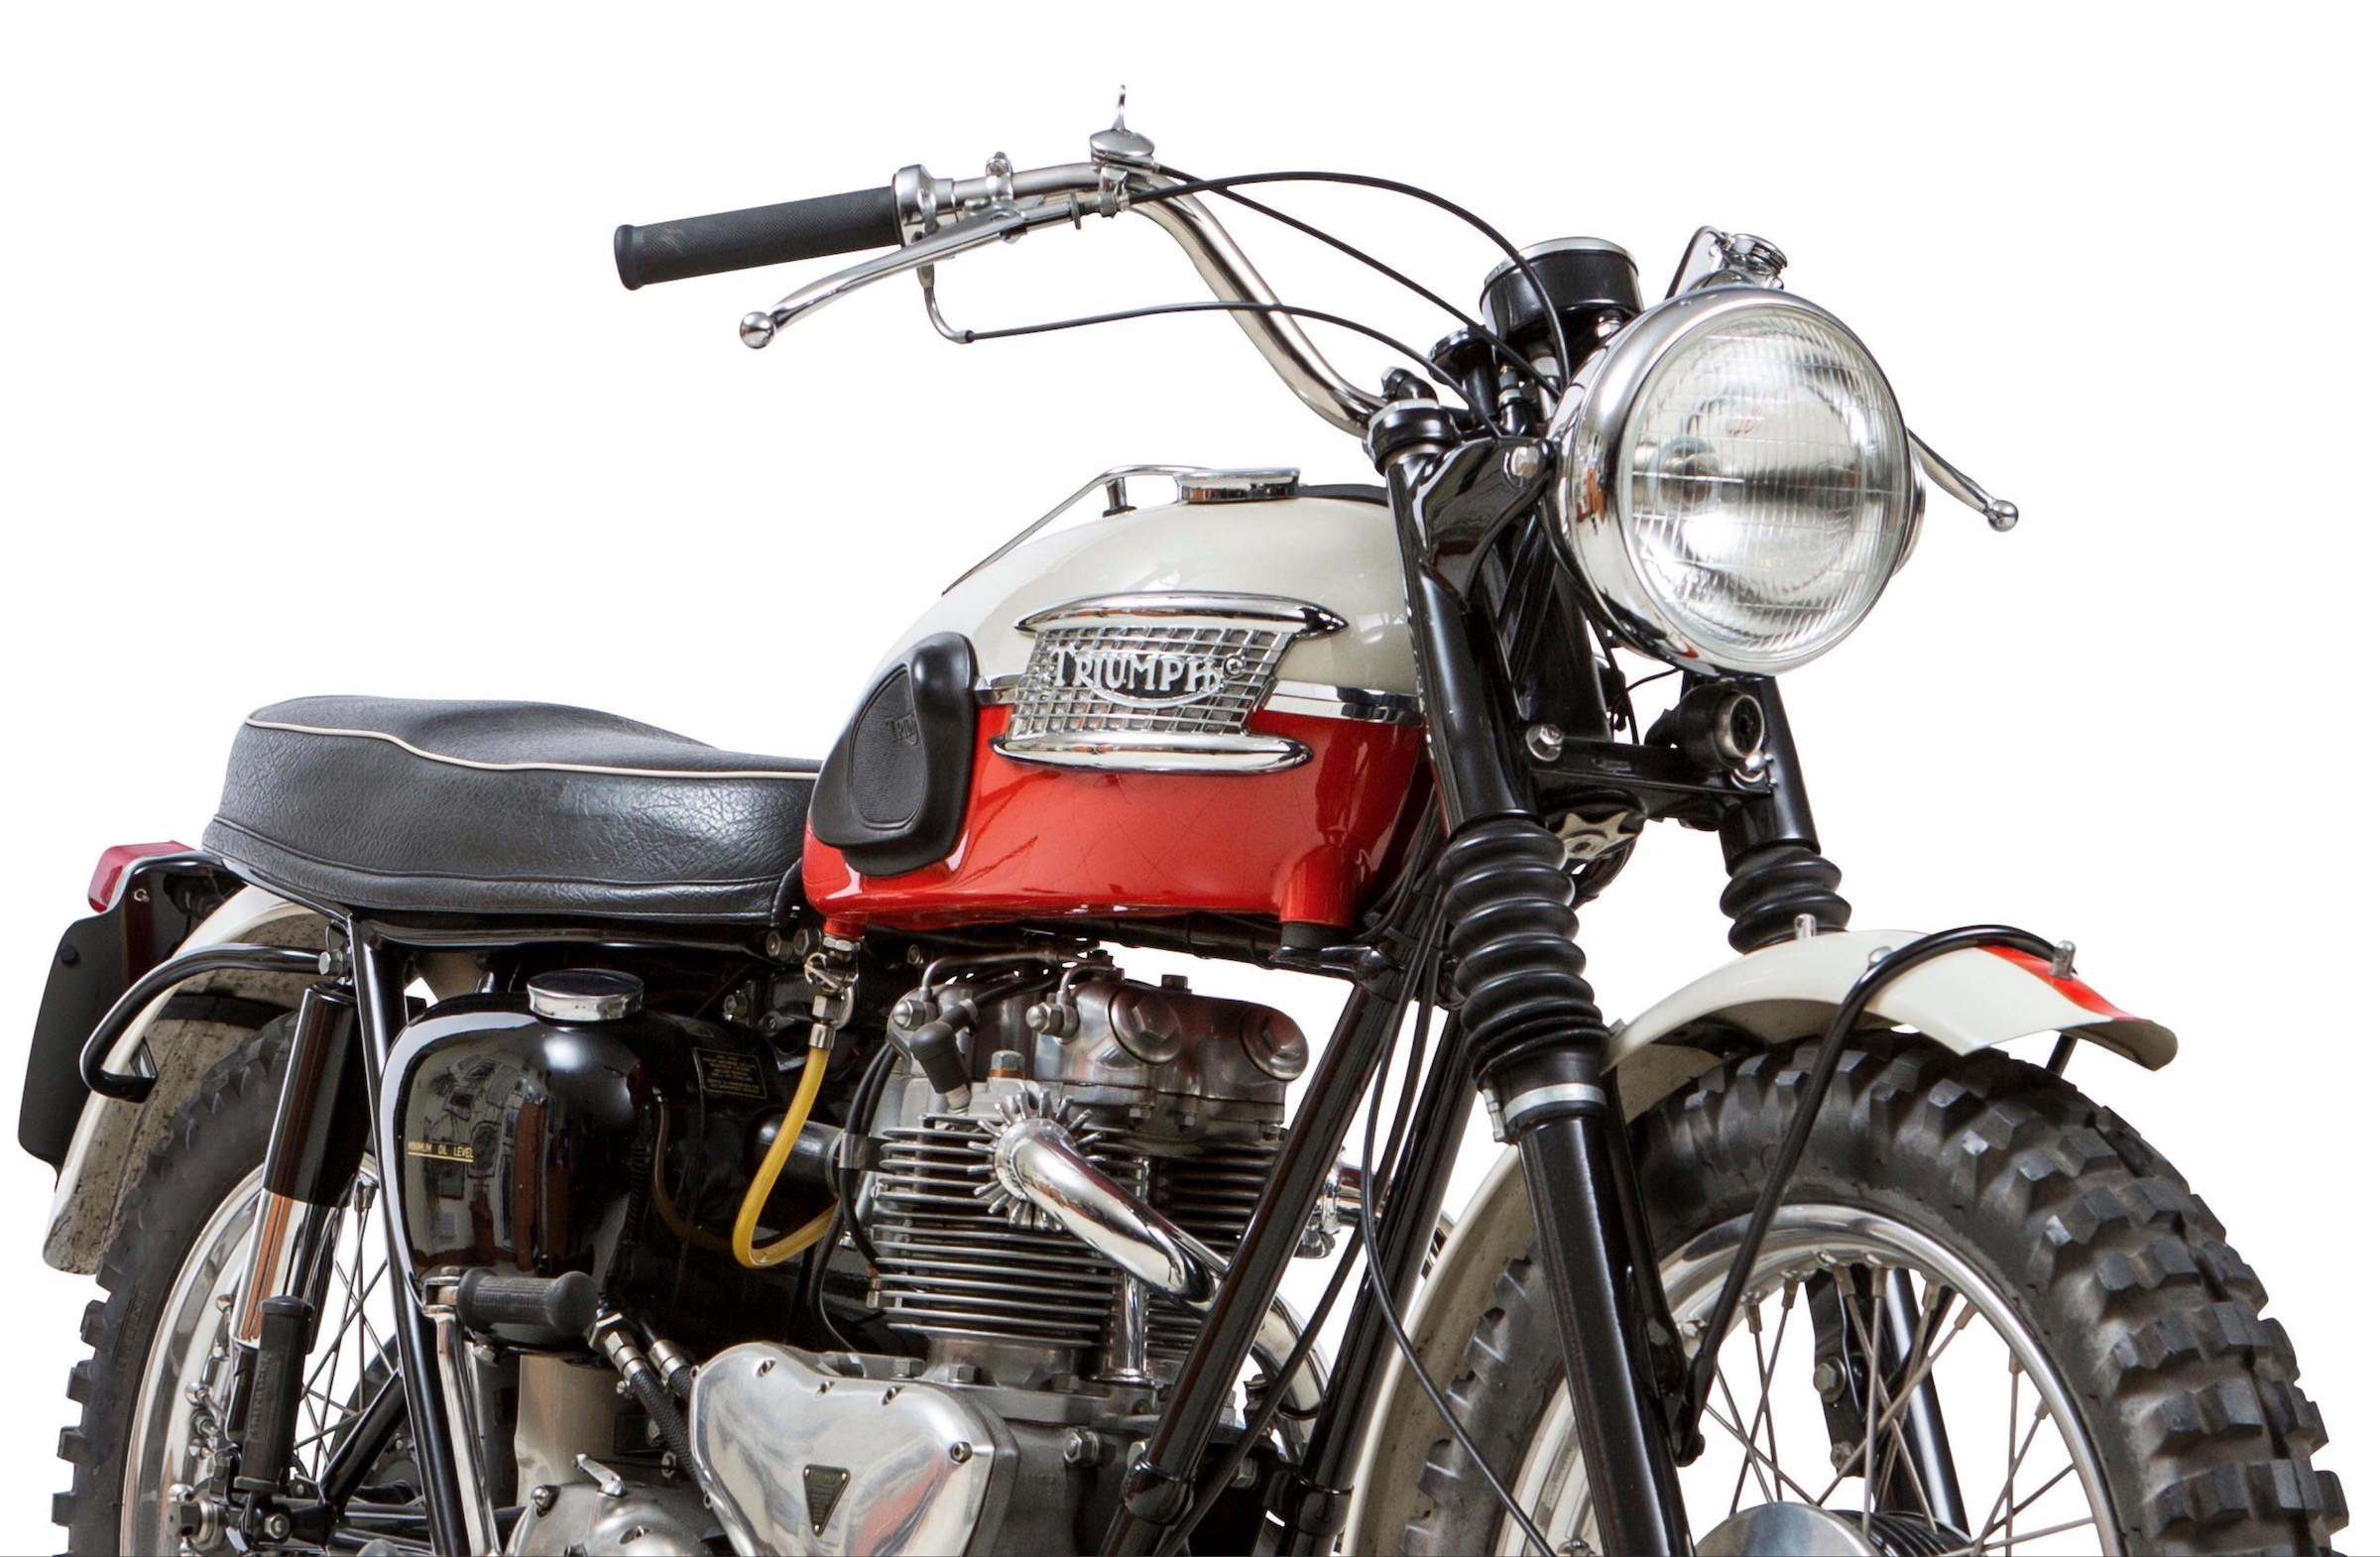 1960 Triumph TR6 Trophy - The Iconic Desert Sled